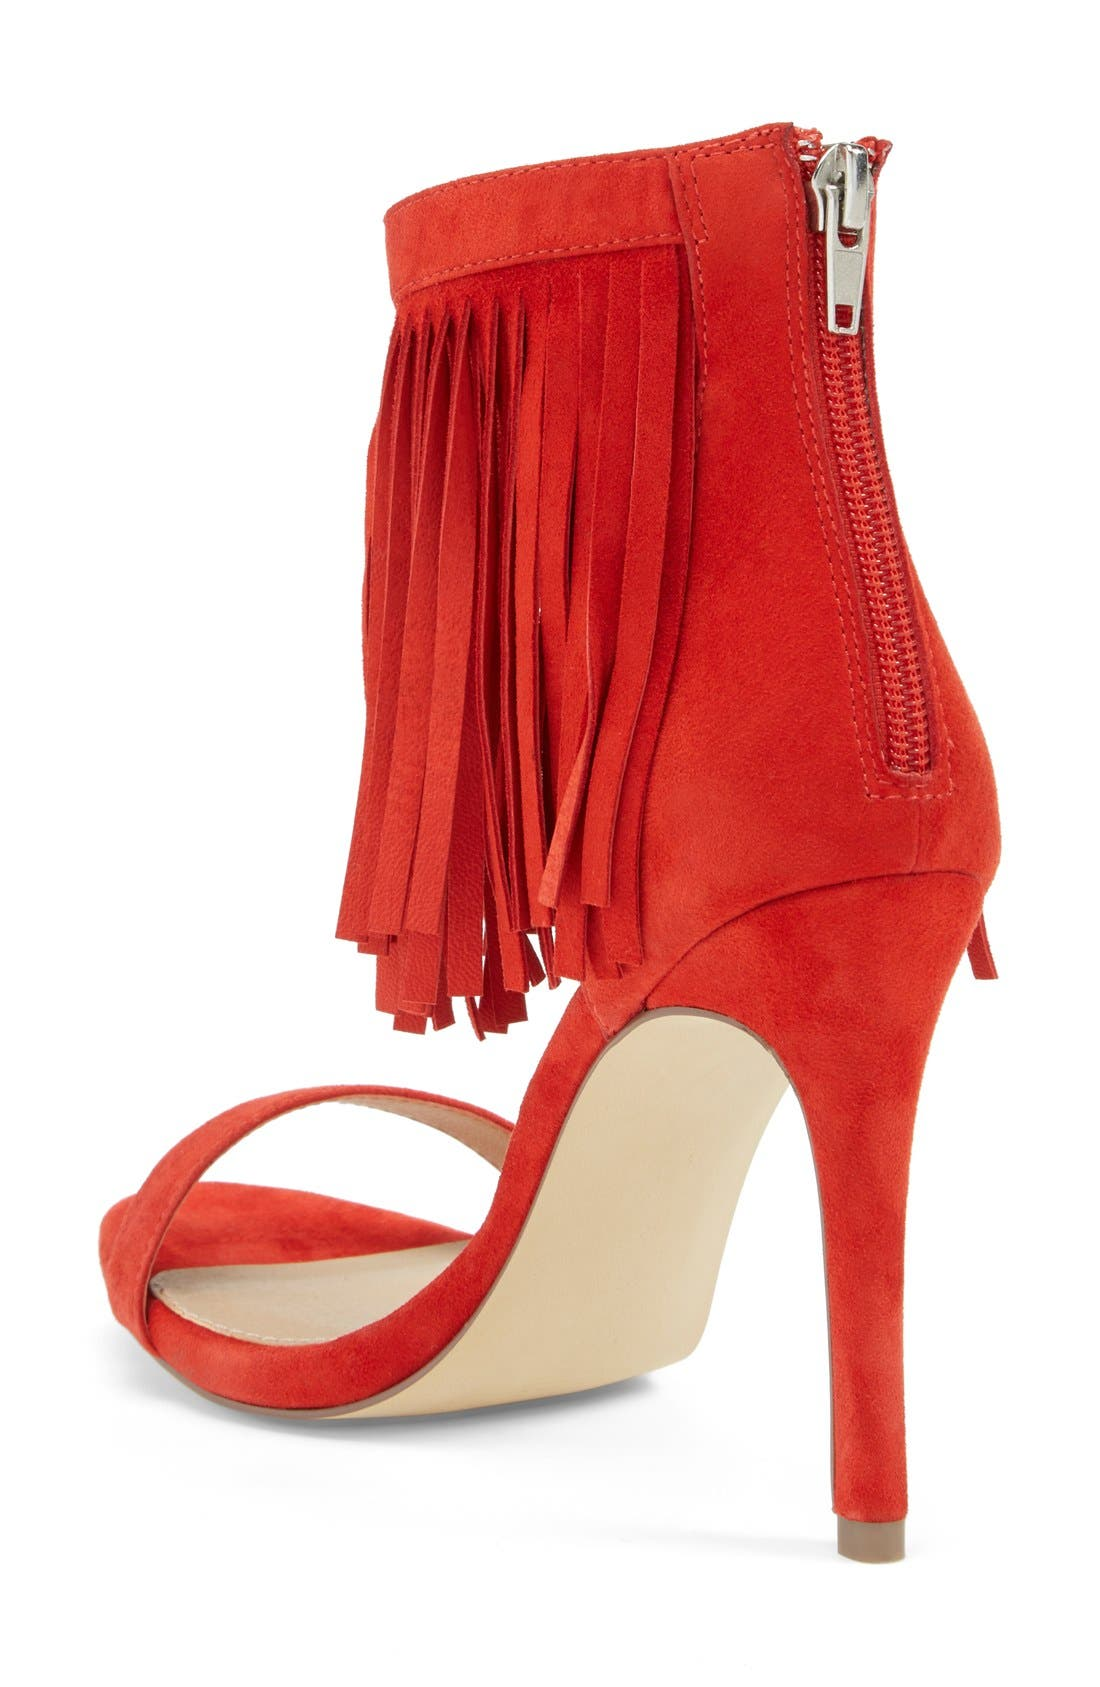 'Staarz' Ankle Fringe Sandal,                             Alternate thumbnail 2, color,                             Coral Suede